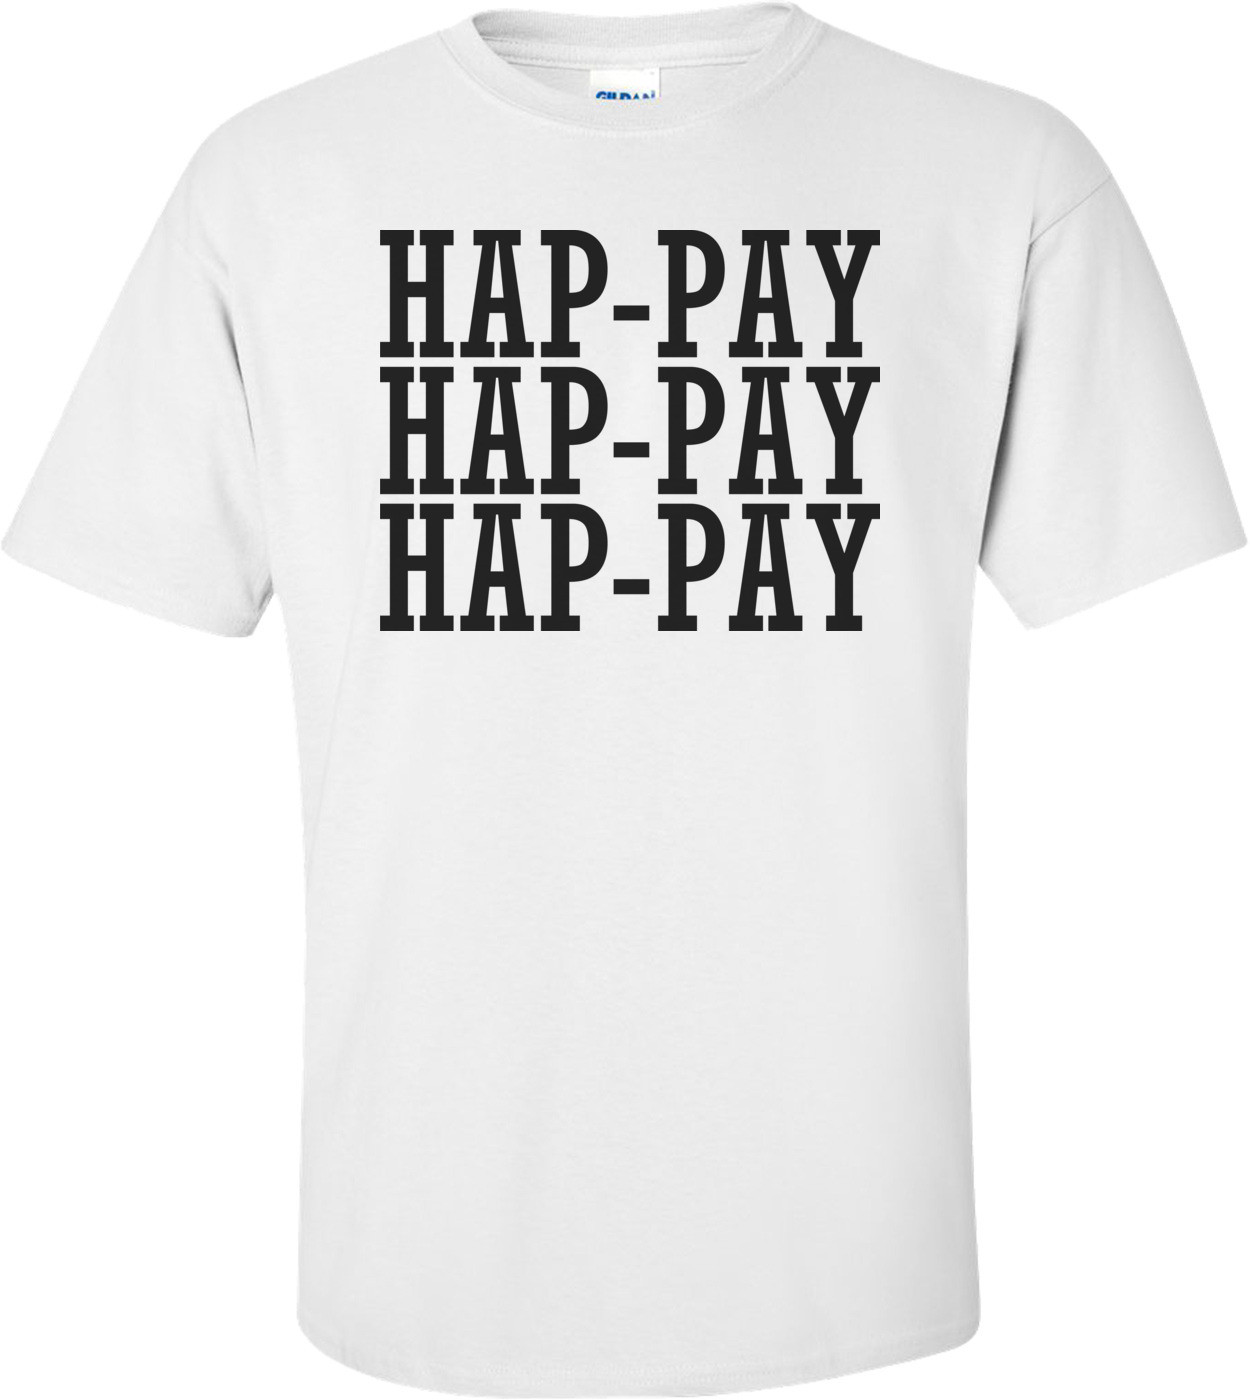 Hap-pay Duck Dynasty Shirt